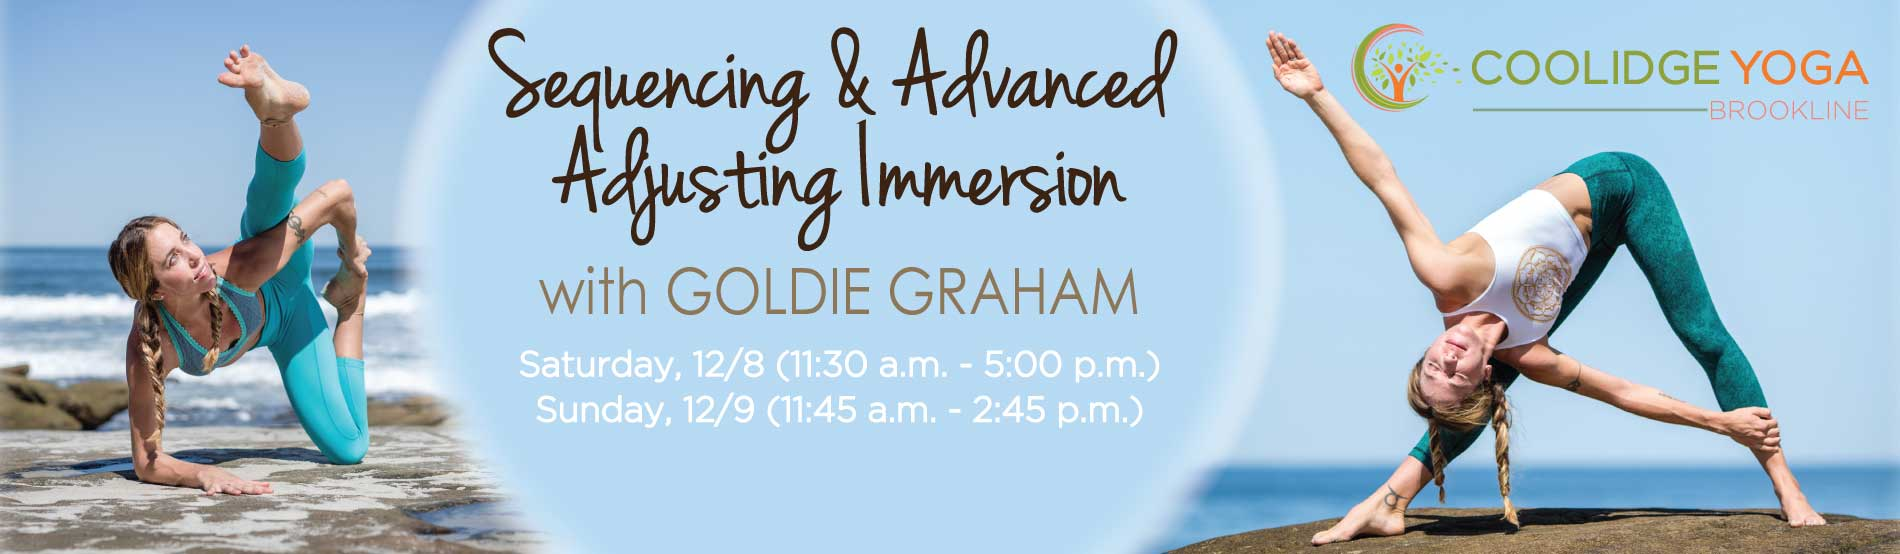 Sequencing & Advanced Adjusting Immersion Yoga Workshop with Goldie Graham at Coolidge Yoga